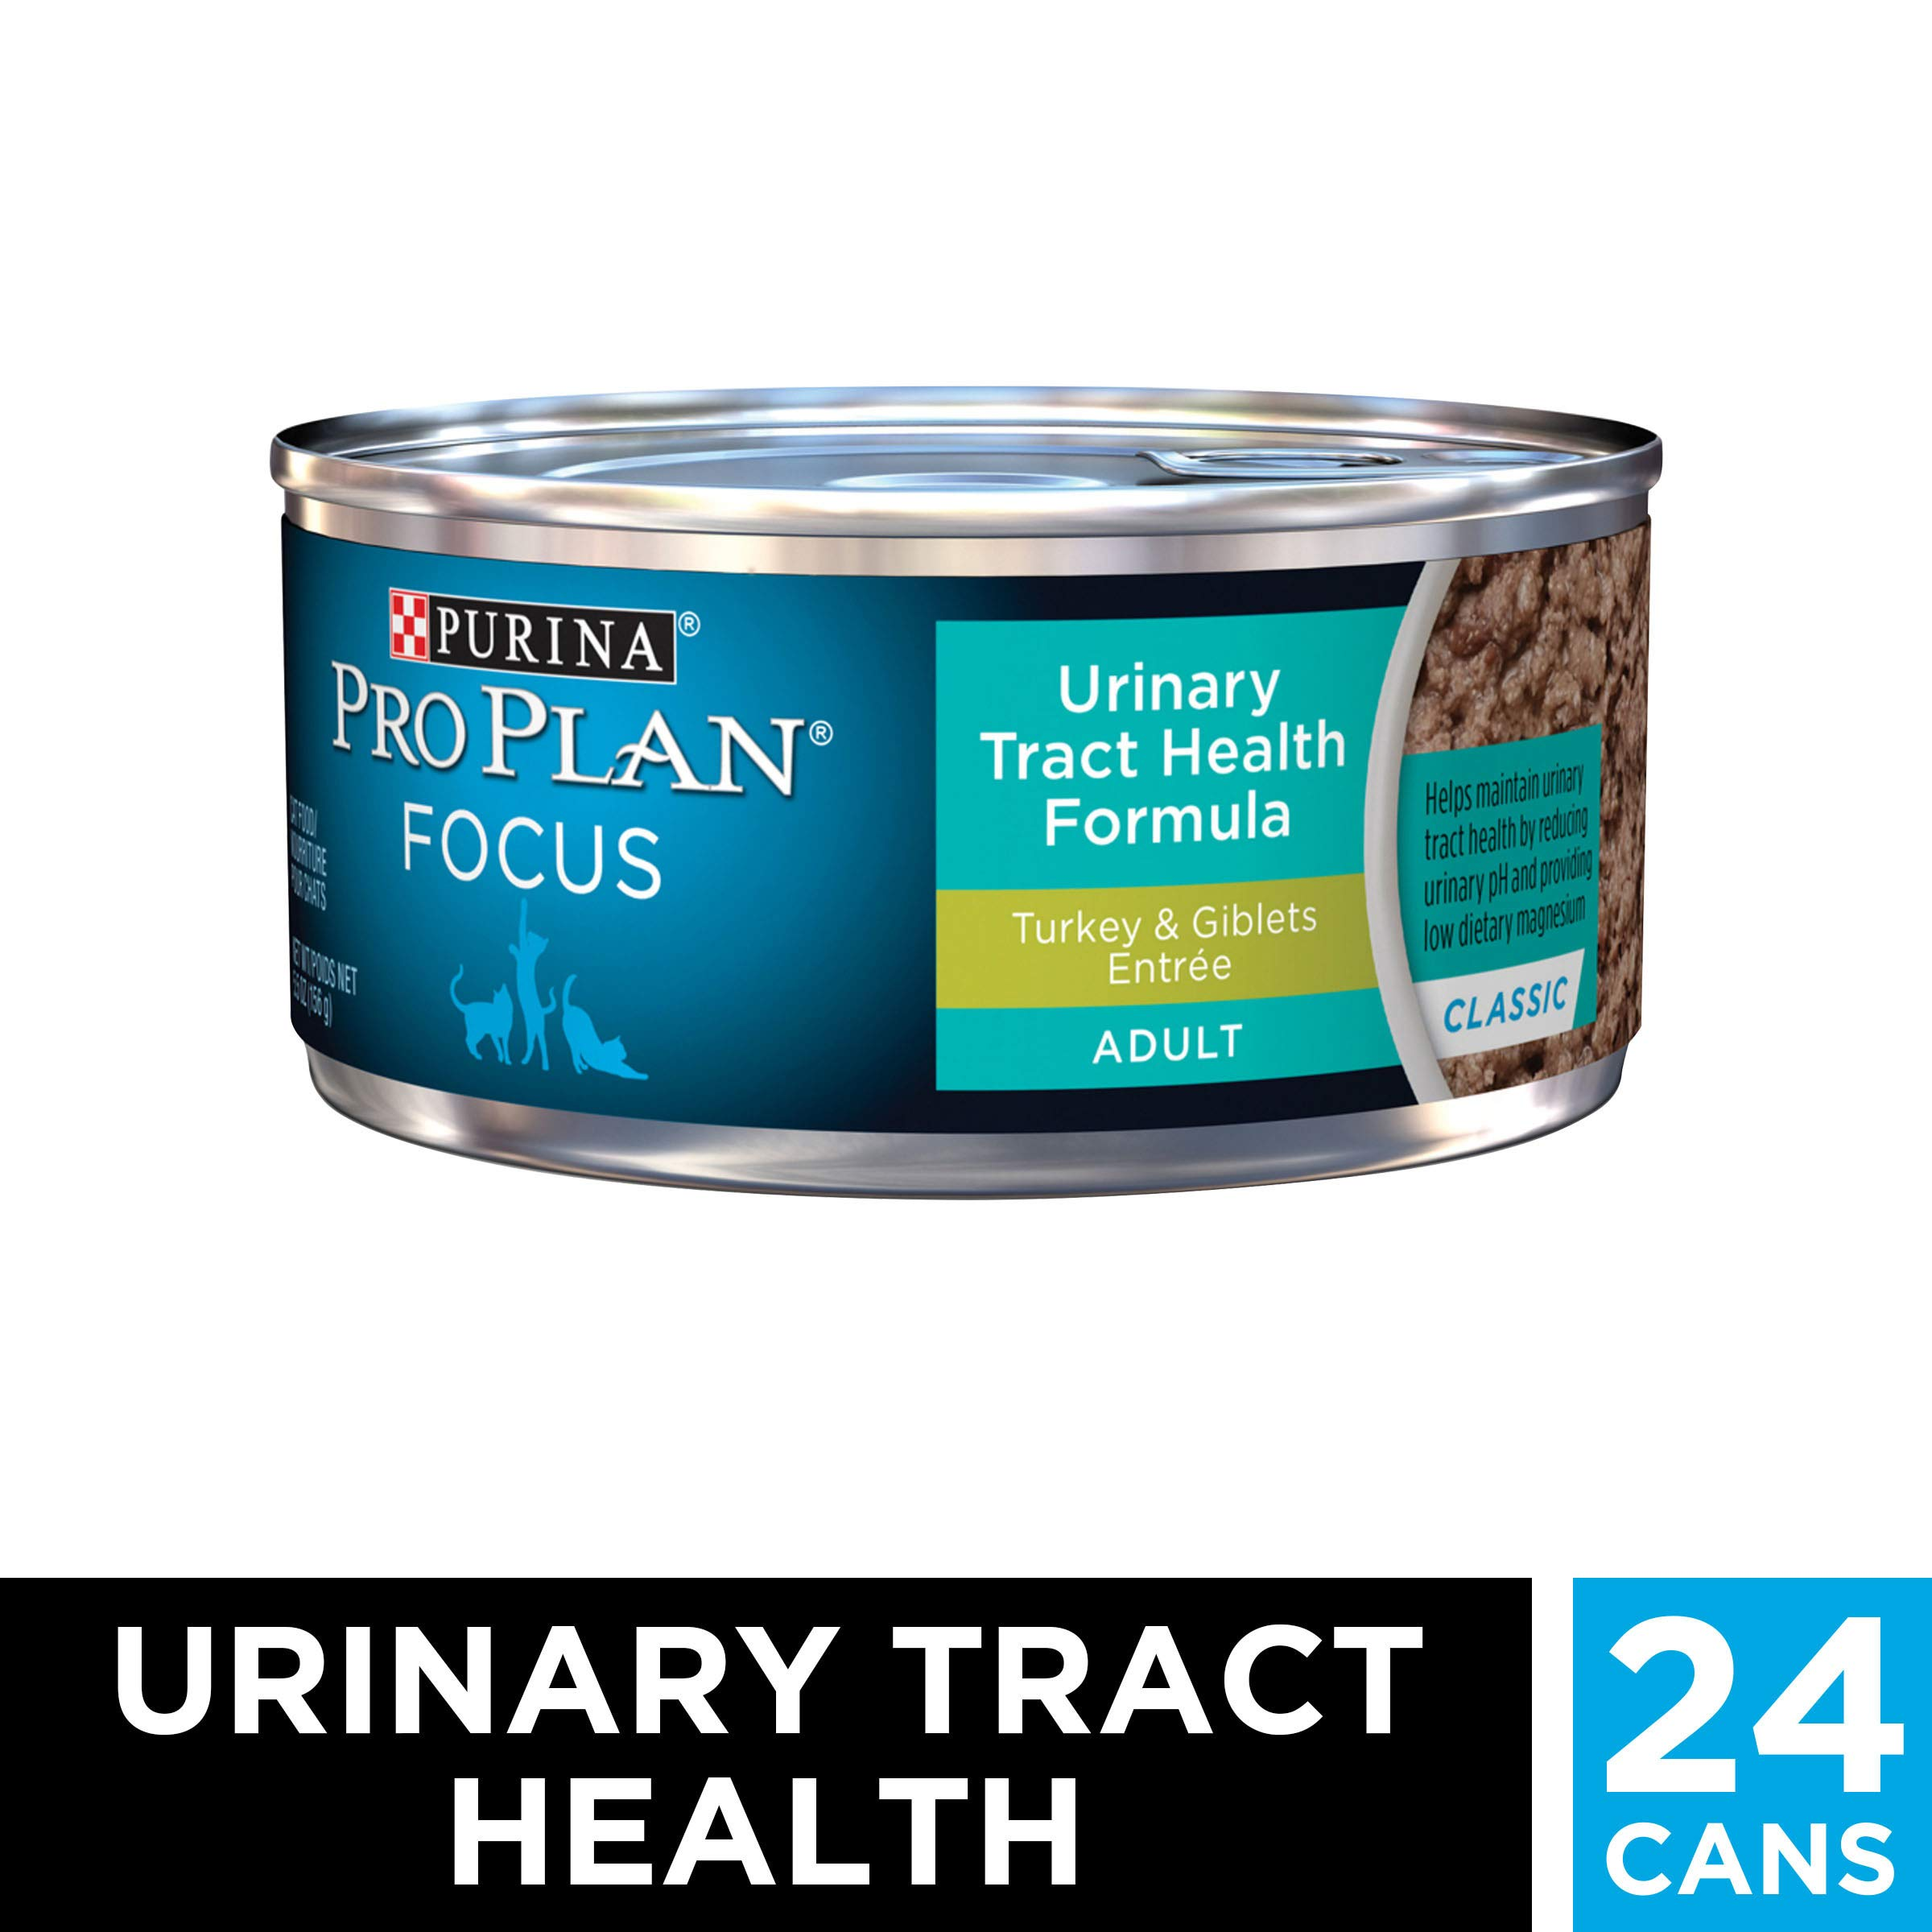 Purina Pro Plan Urinary Tract Health Pate Wet Cat Food, FOCUS Urinary Tract Health Formula Turkey & Giblets Entree - (24) 5.5 oz. Cans by PURINA Pro Plan